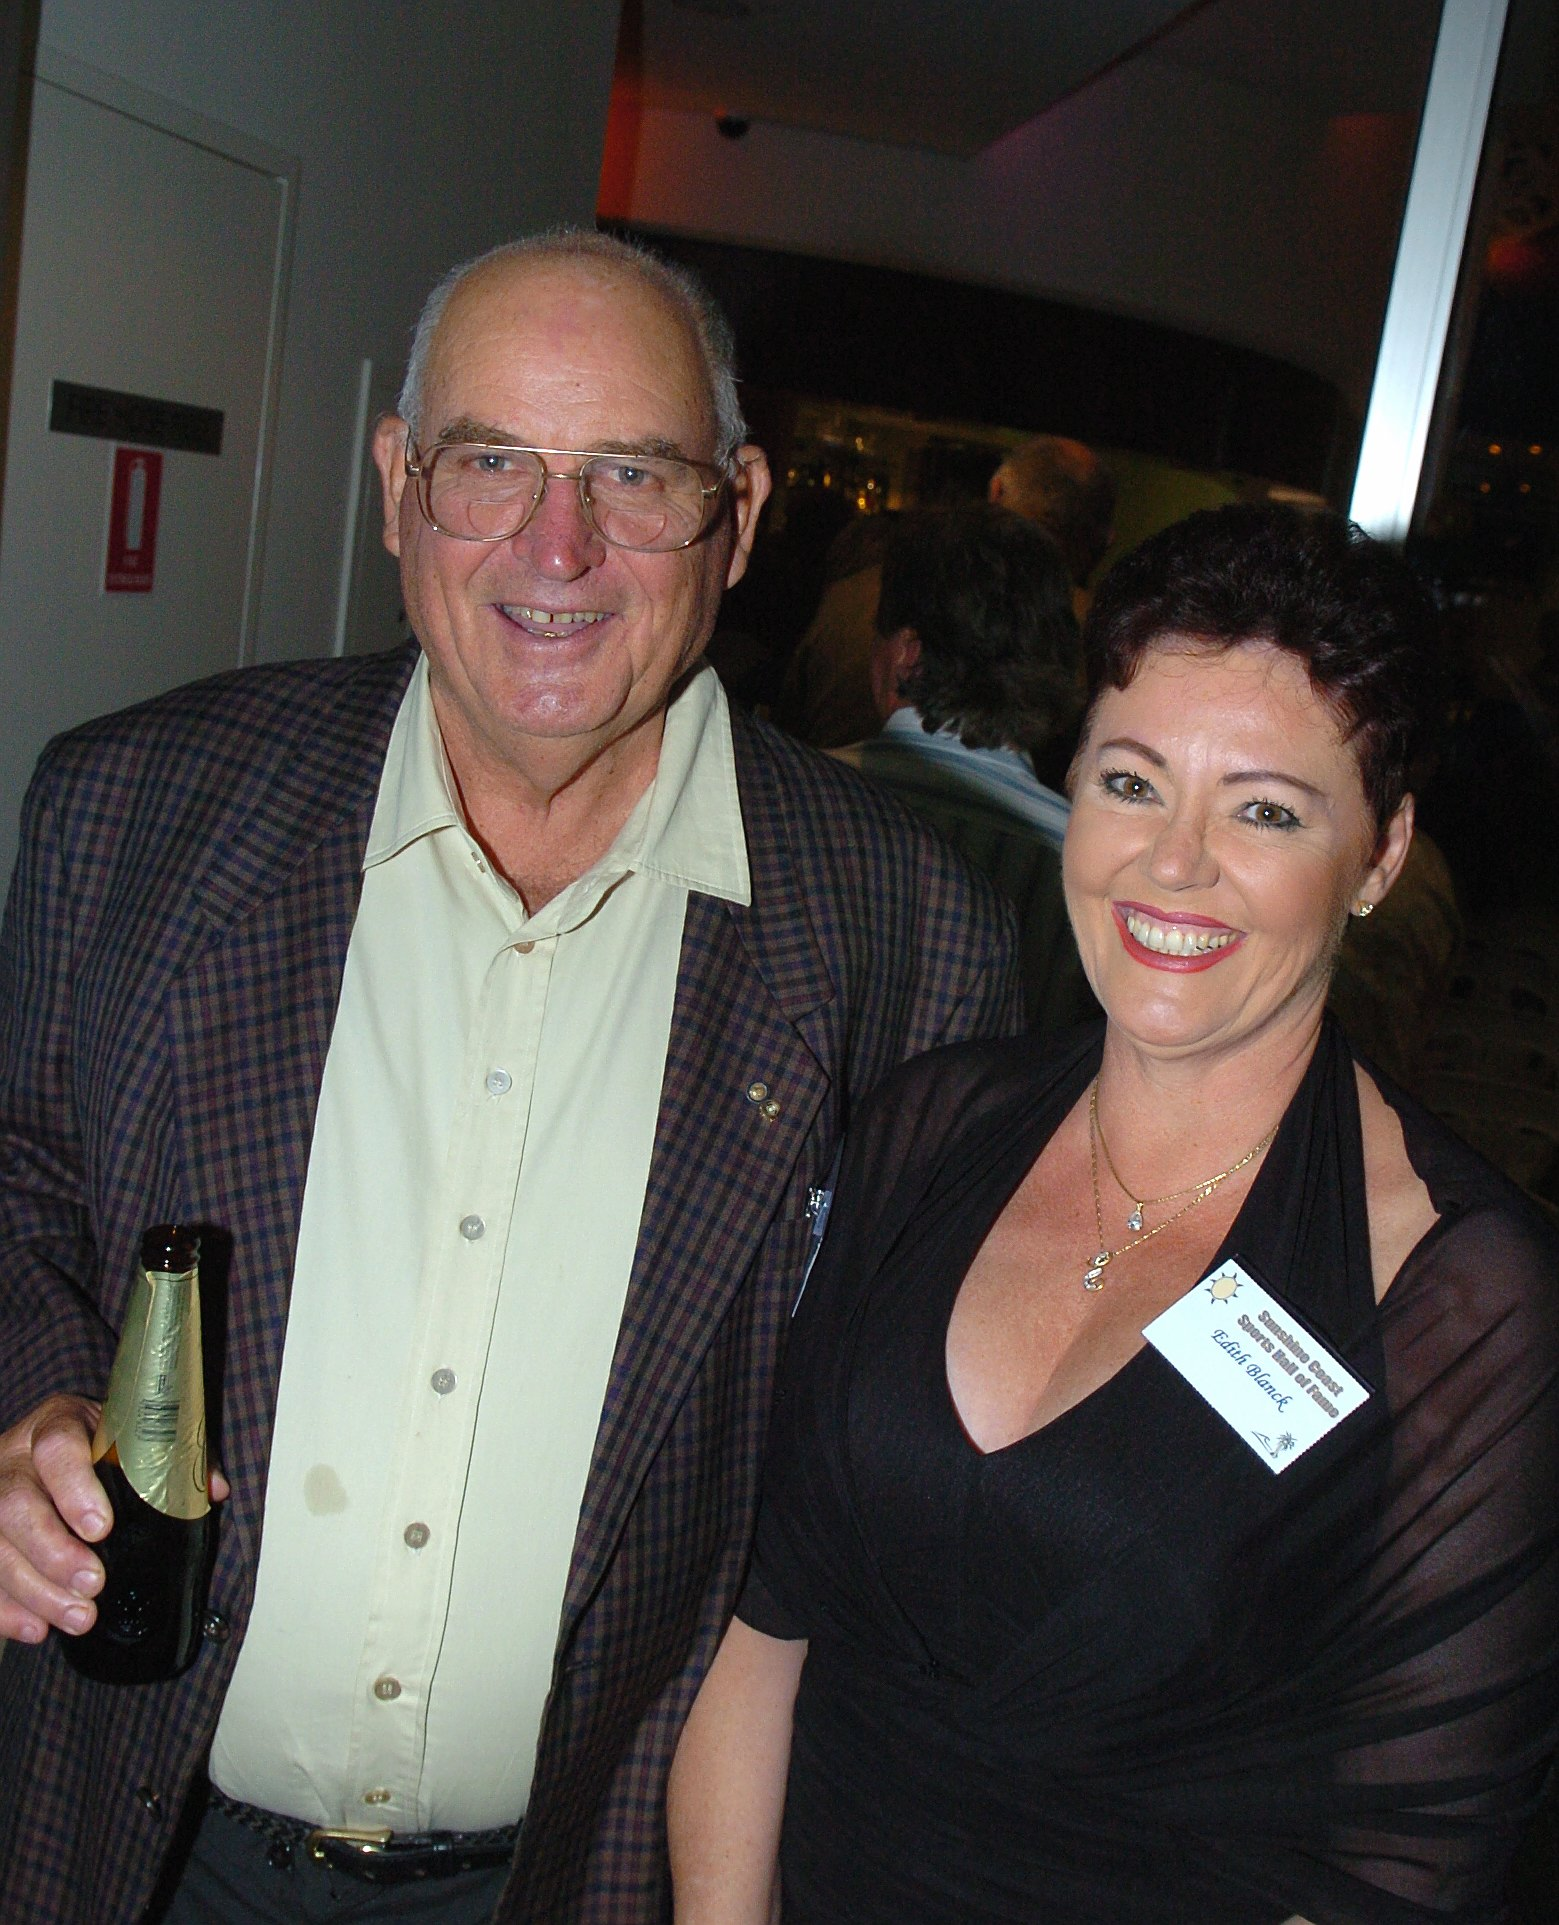 John Blanck received a certificate of merit in the Sunshine Coast Sports Hall of Fame and was congratulated by his wife Edith.